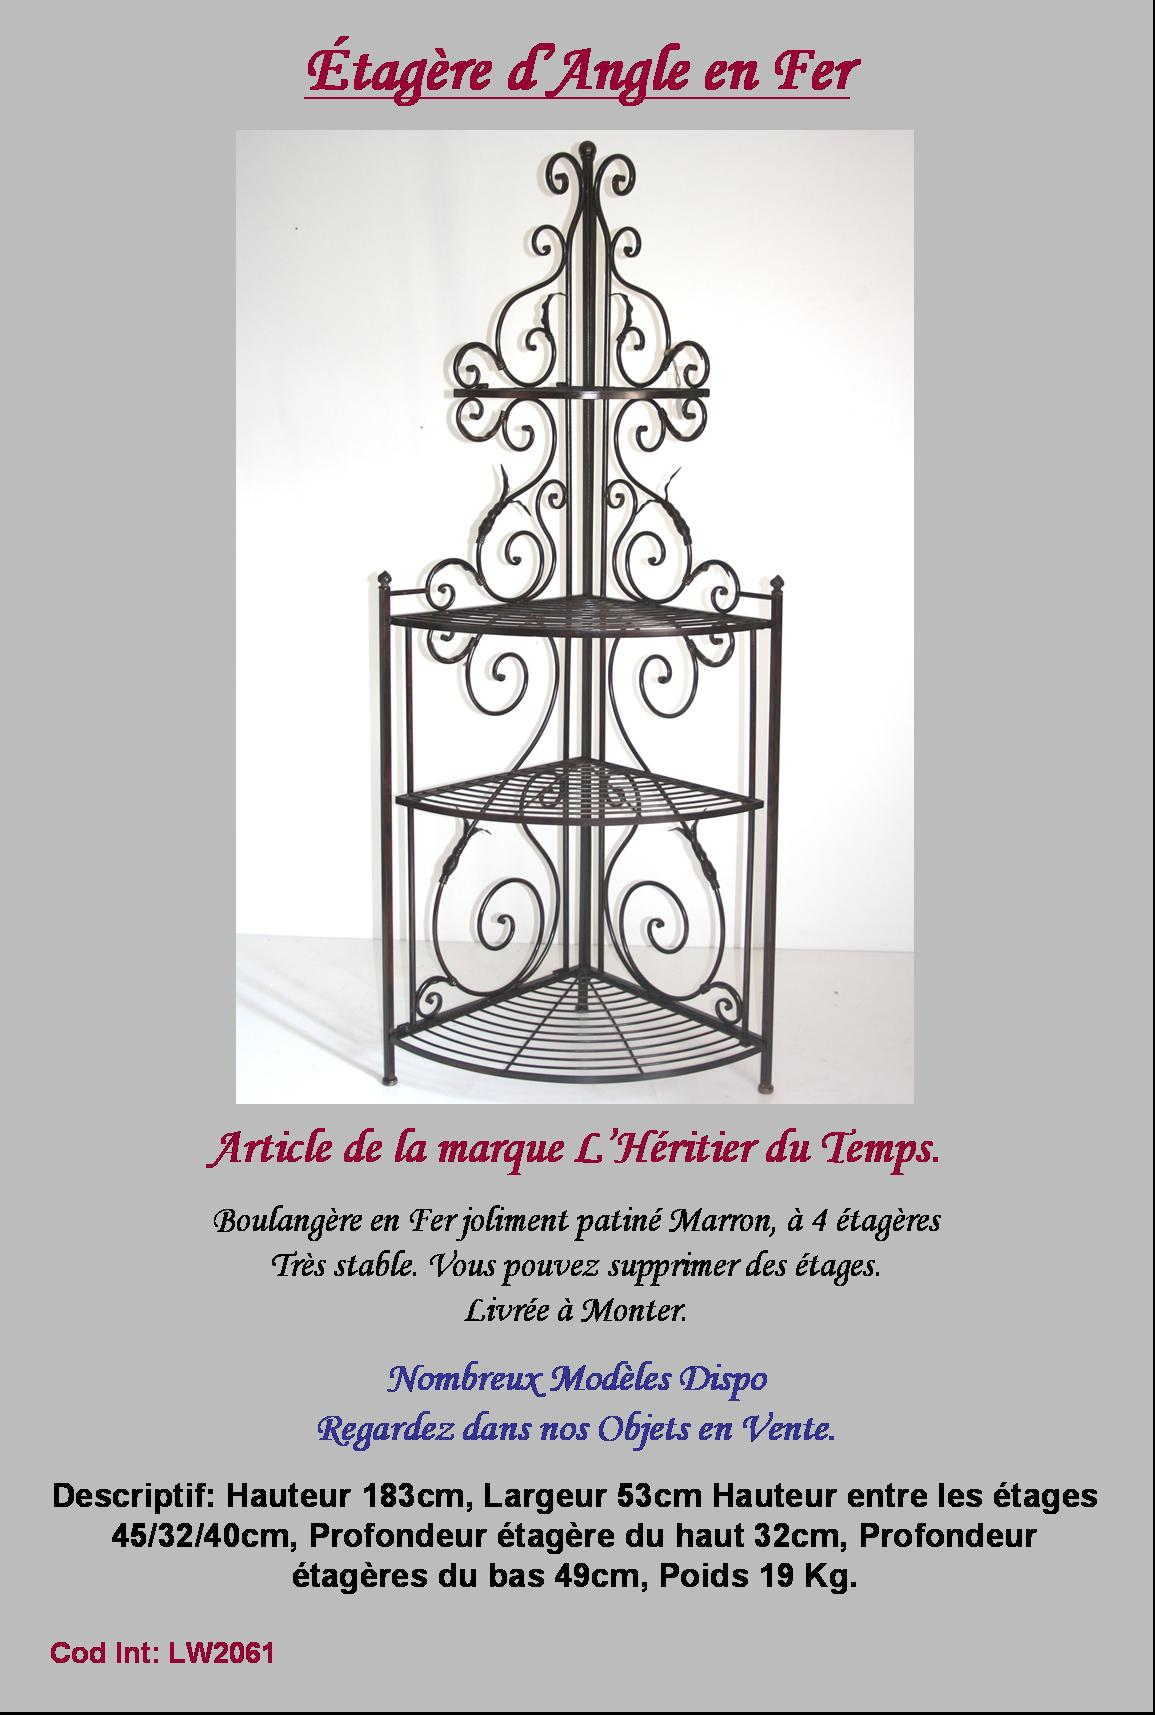 etagere boulangere console d angle de coin en fer forgé ideal cuisine salon  -> Salon DAngle En Fer